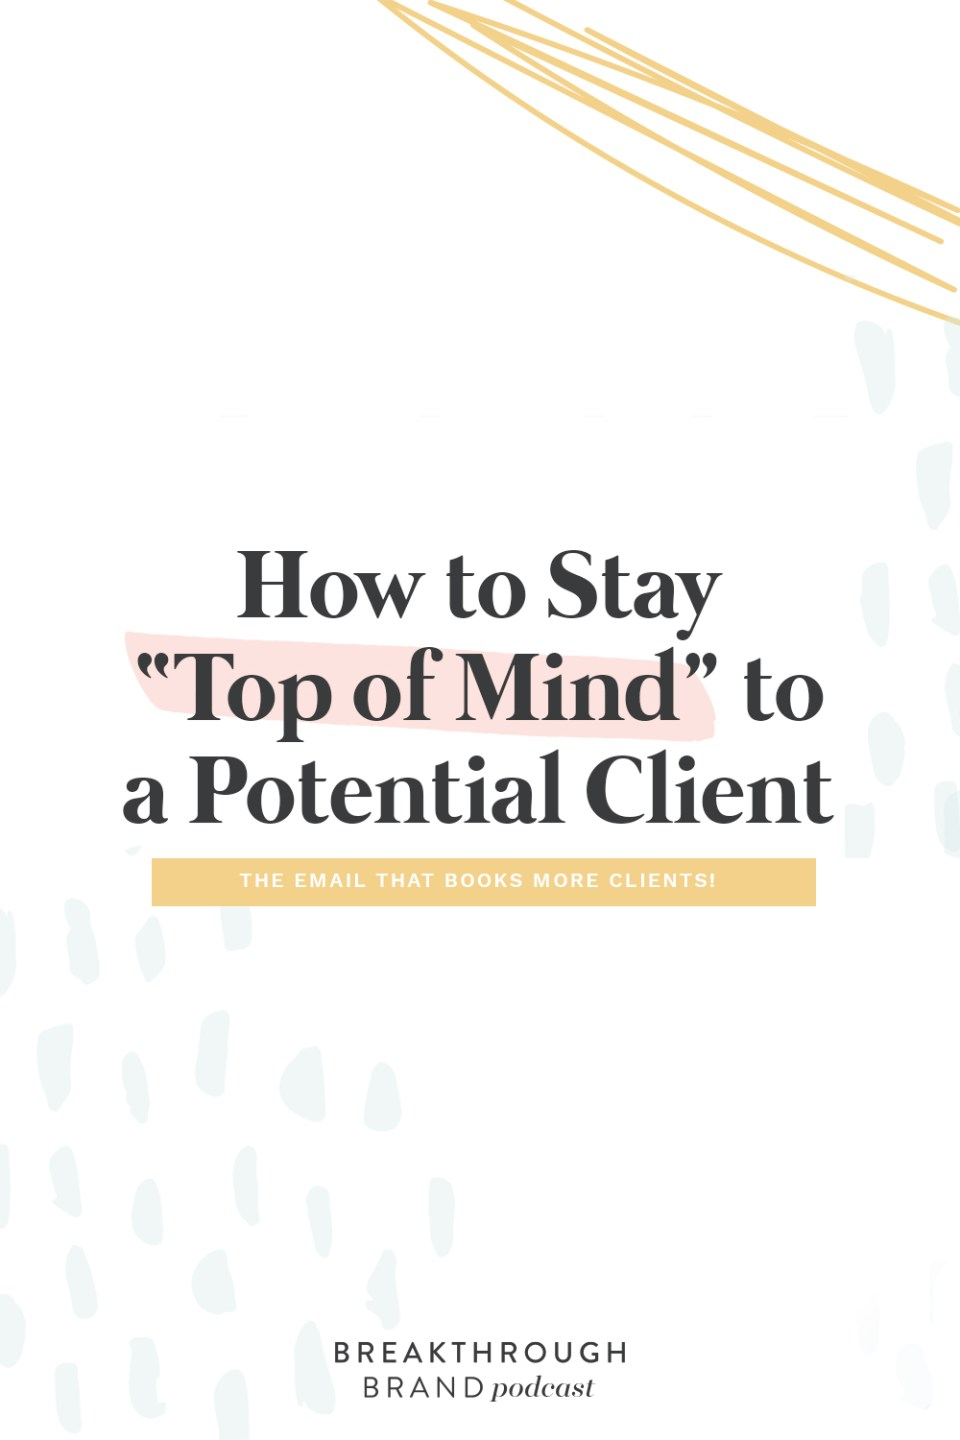 Lean how to stay top of mind with potential clients using this one trick with Elizabeth McCravy on the Breakthrough Brand Podcast.